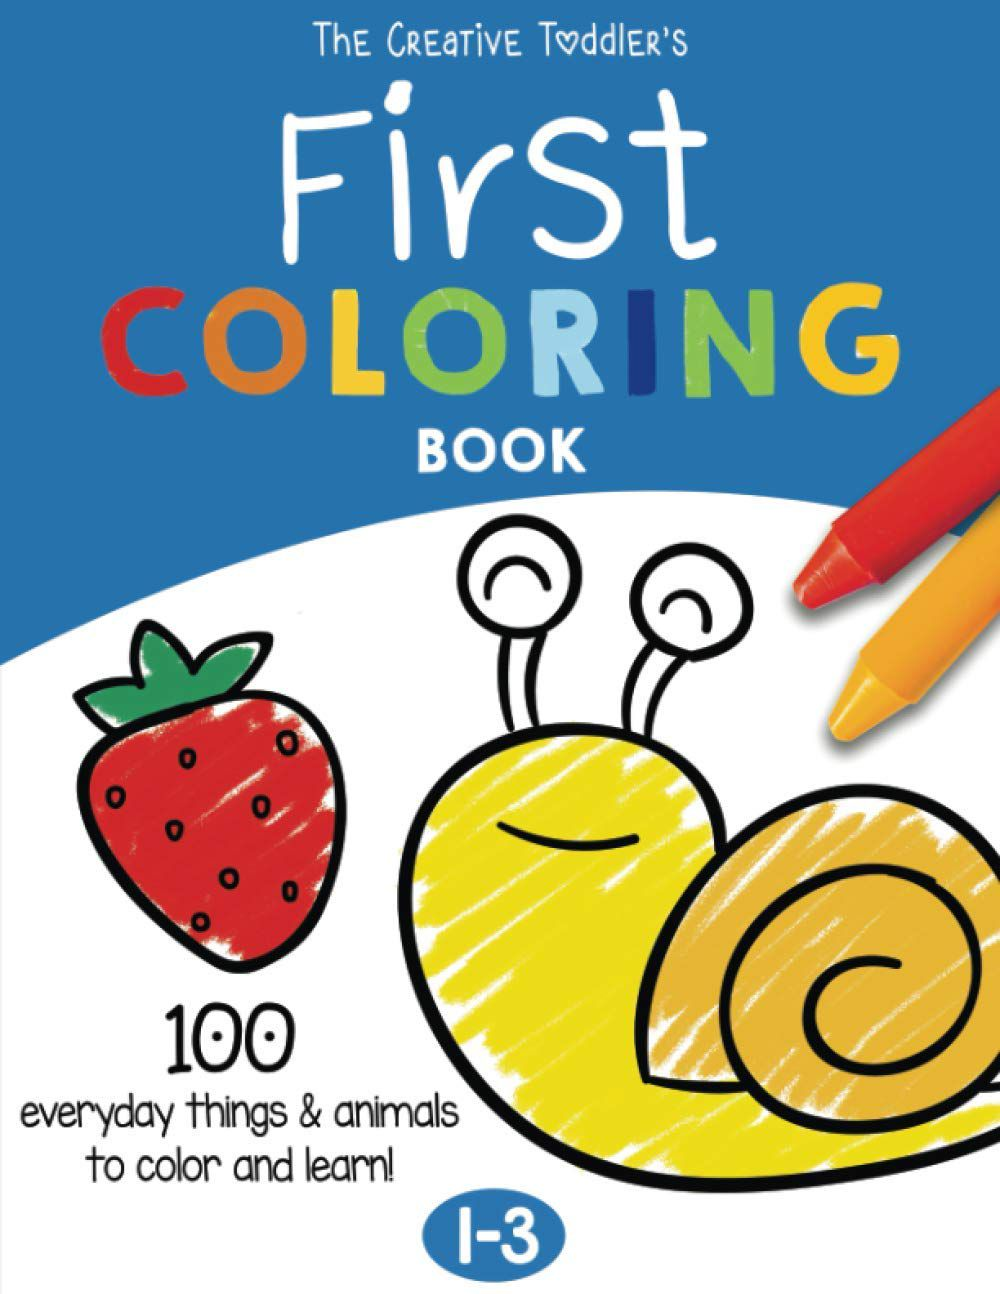 Cover of the creative toddlers first coloring book with an image of a colorful snail and strawberry